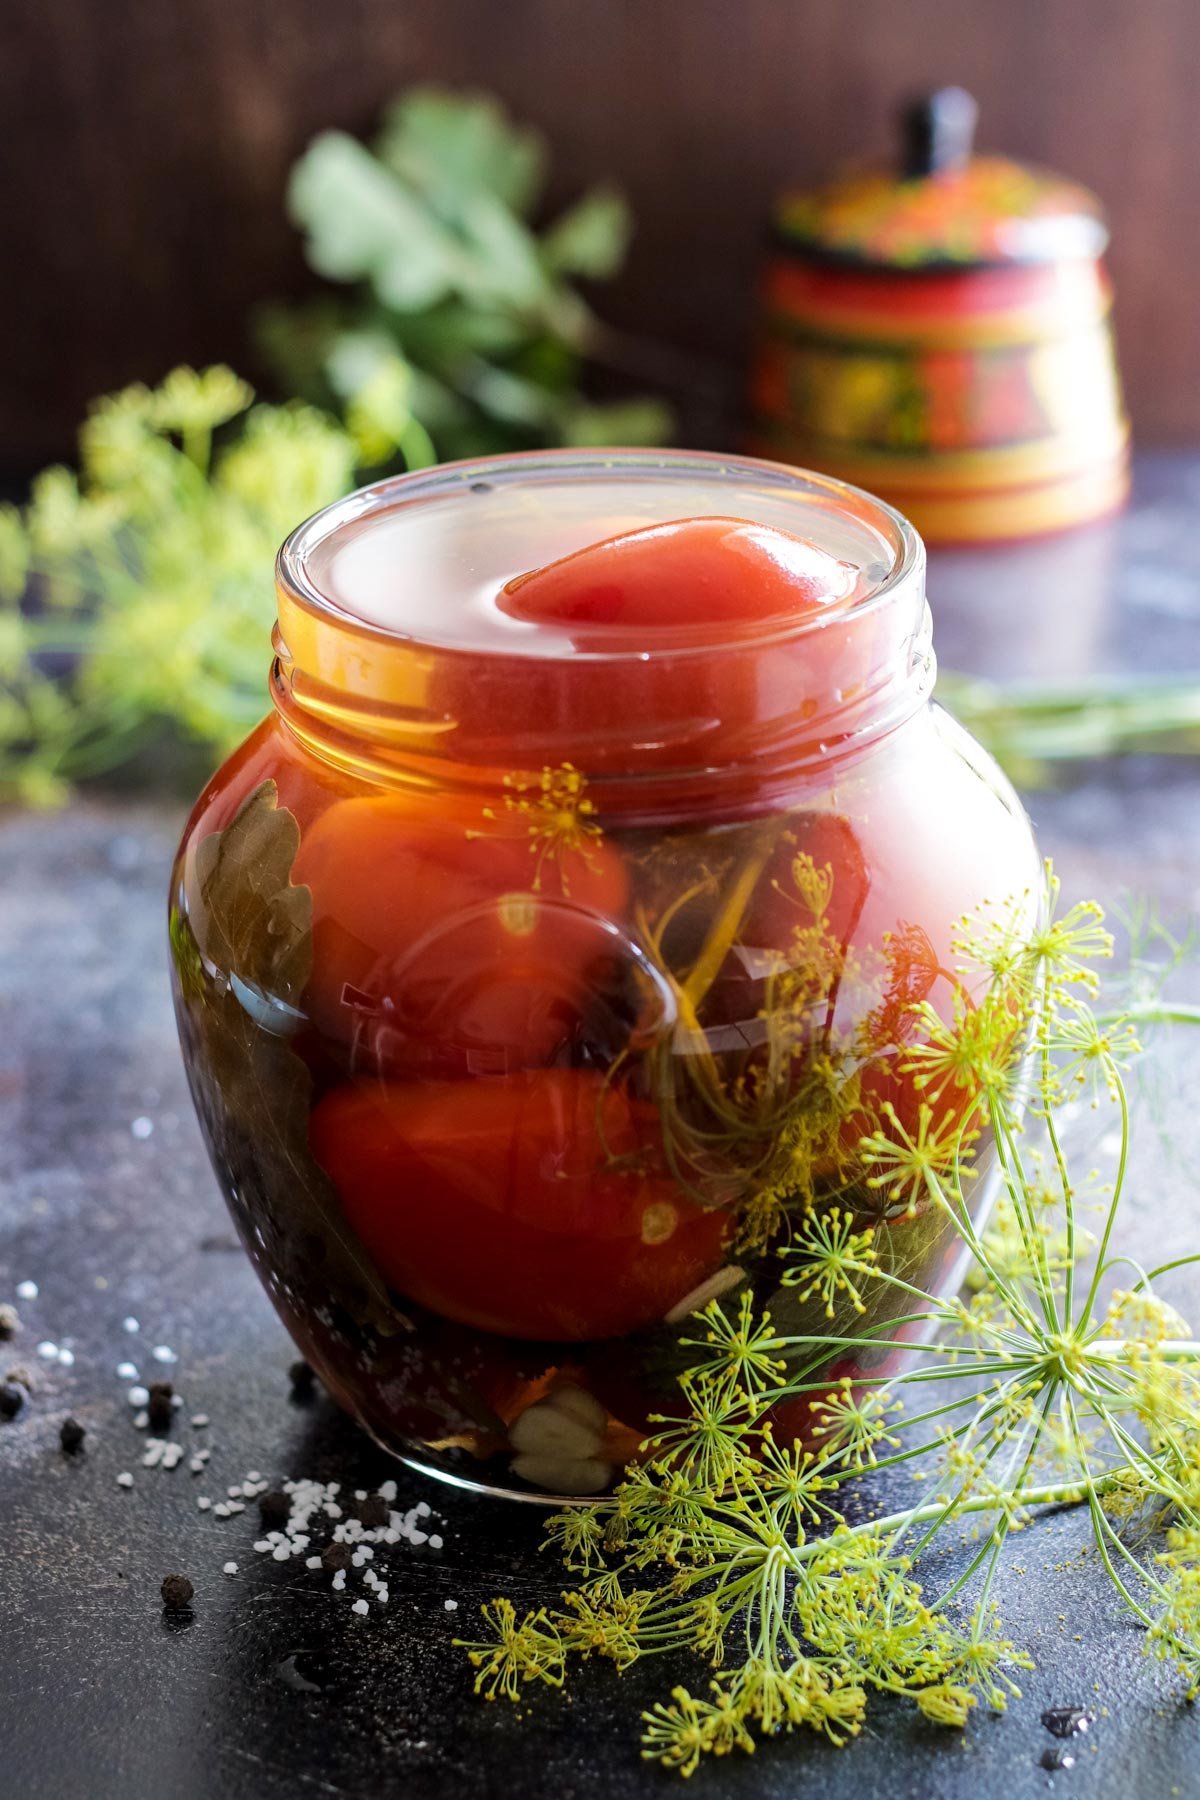 Opened jar with pickled tomatoes.